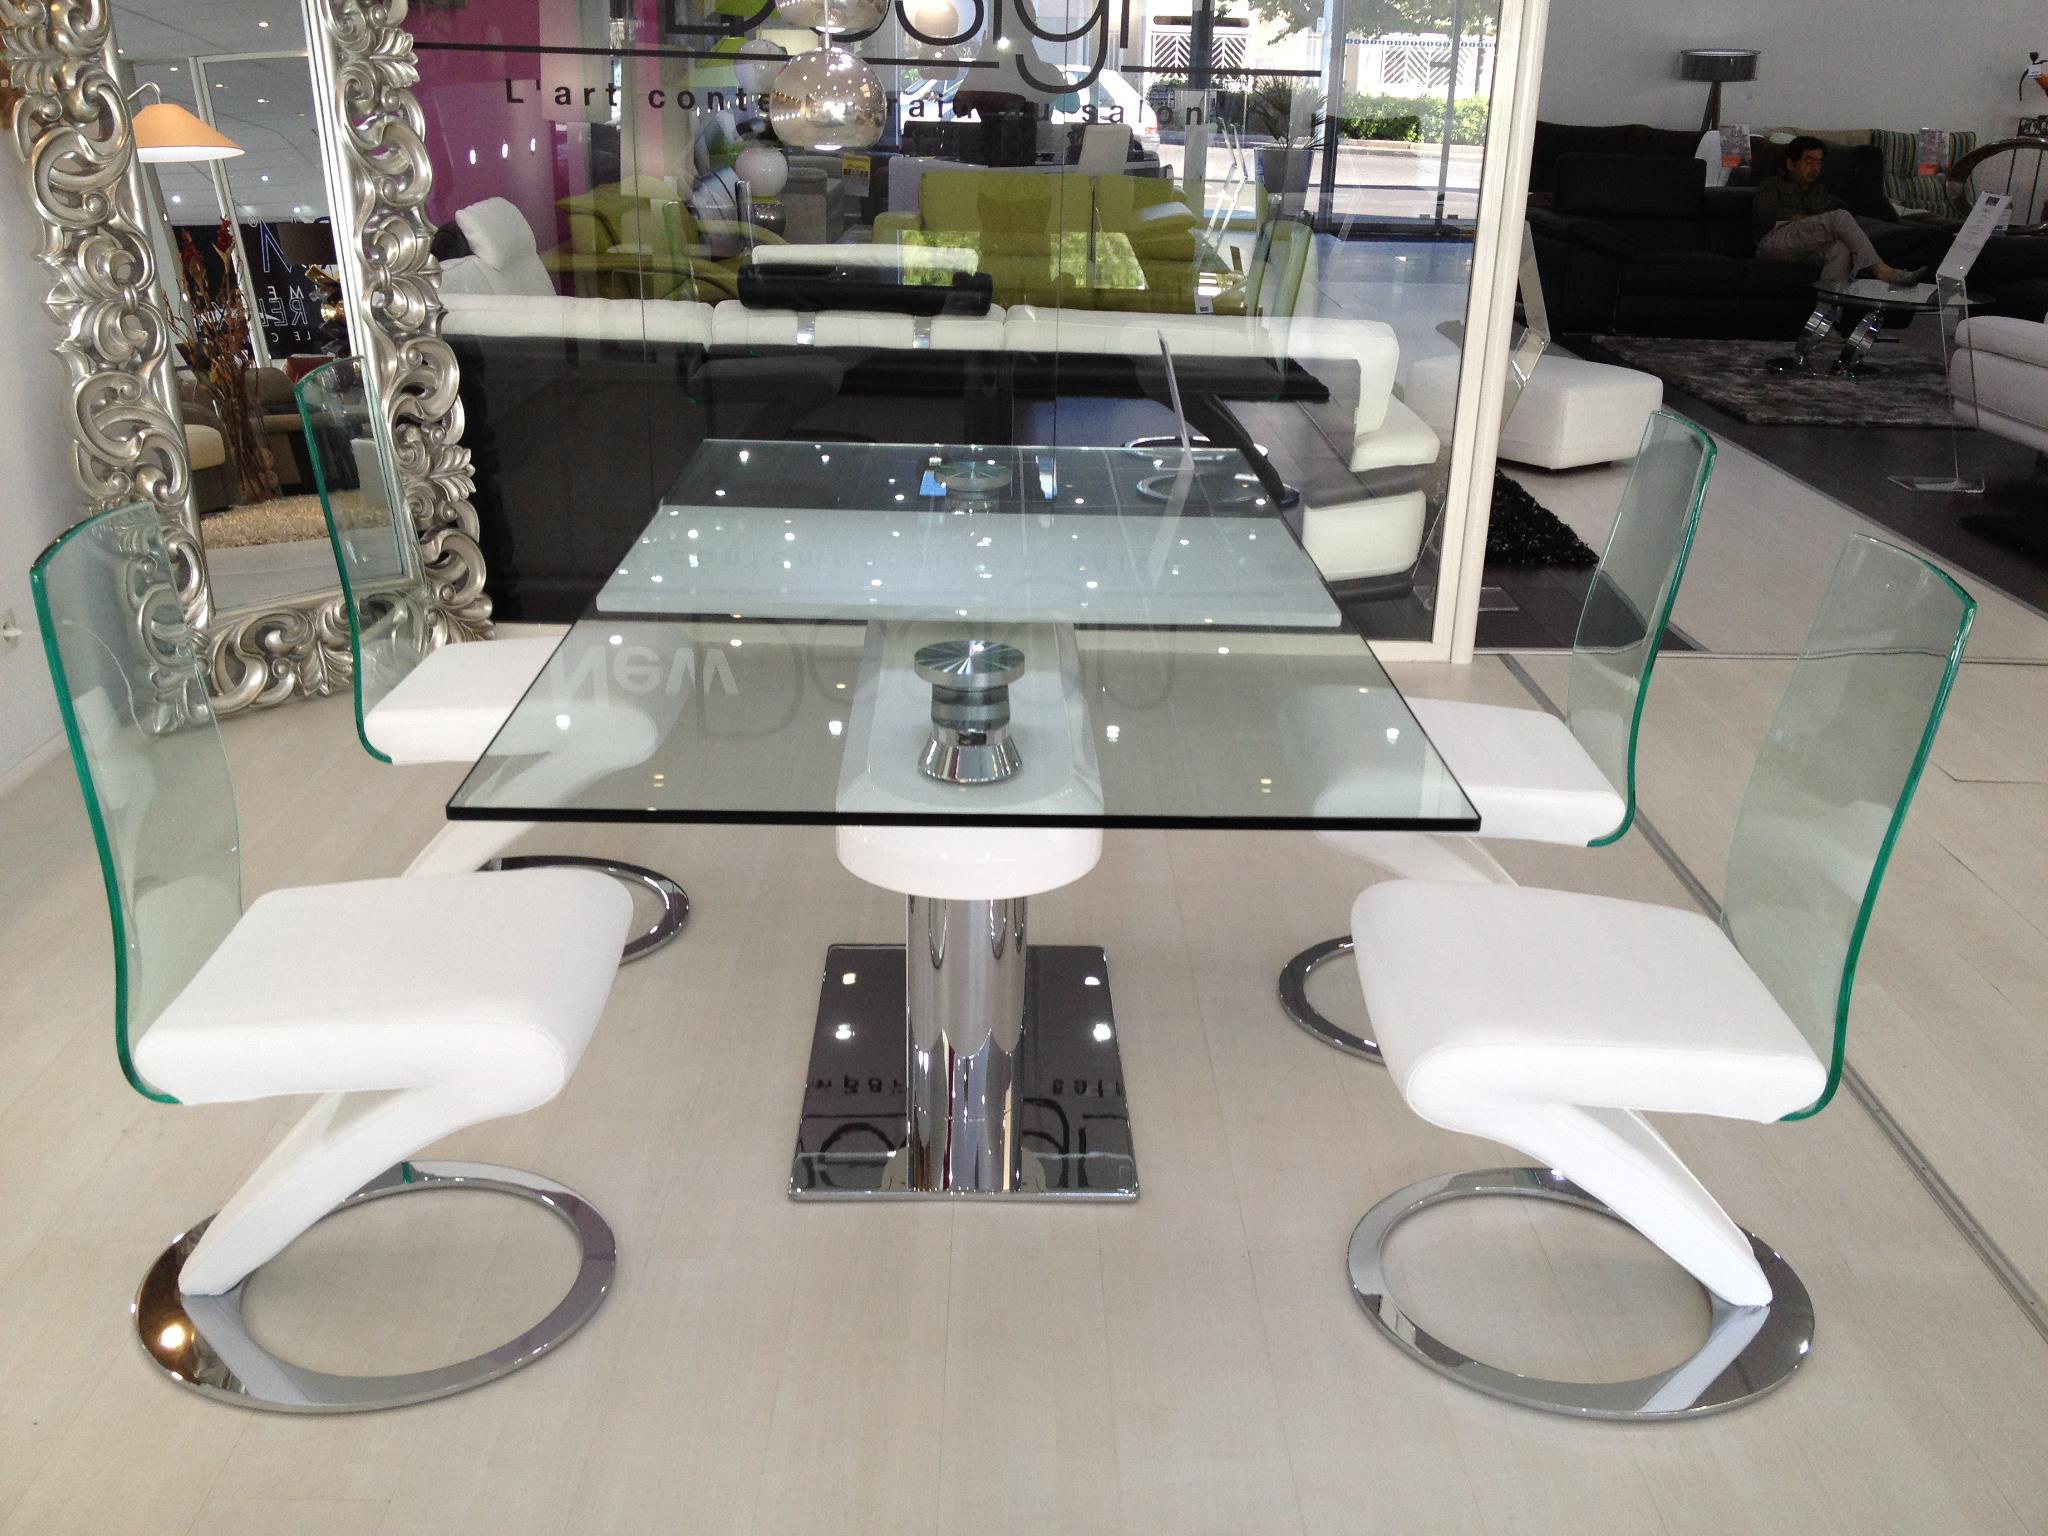 Table salle manger design en verre avec rallonges mod le steelwood Table en verre design